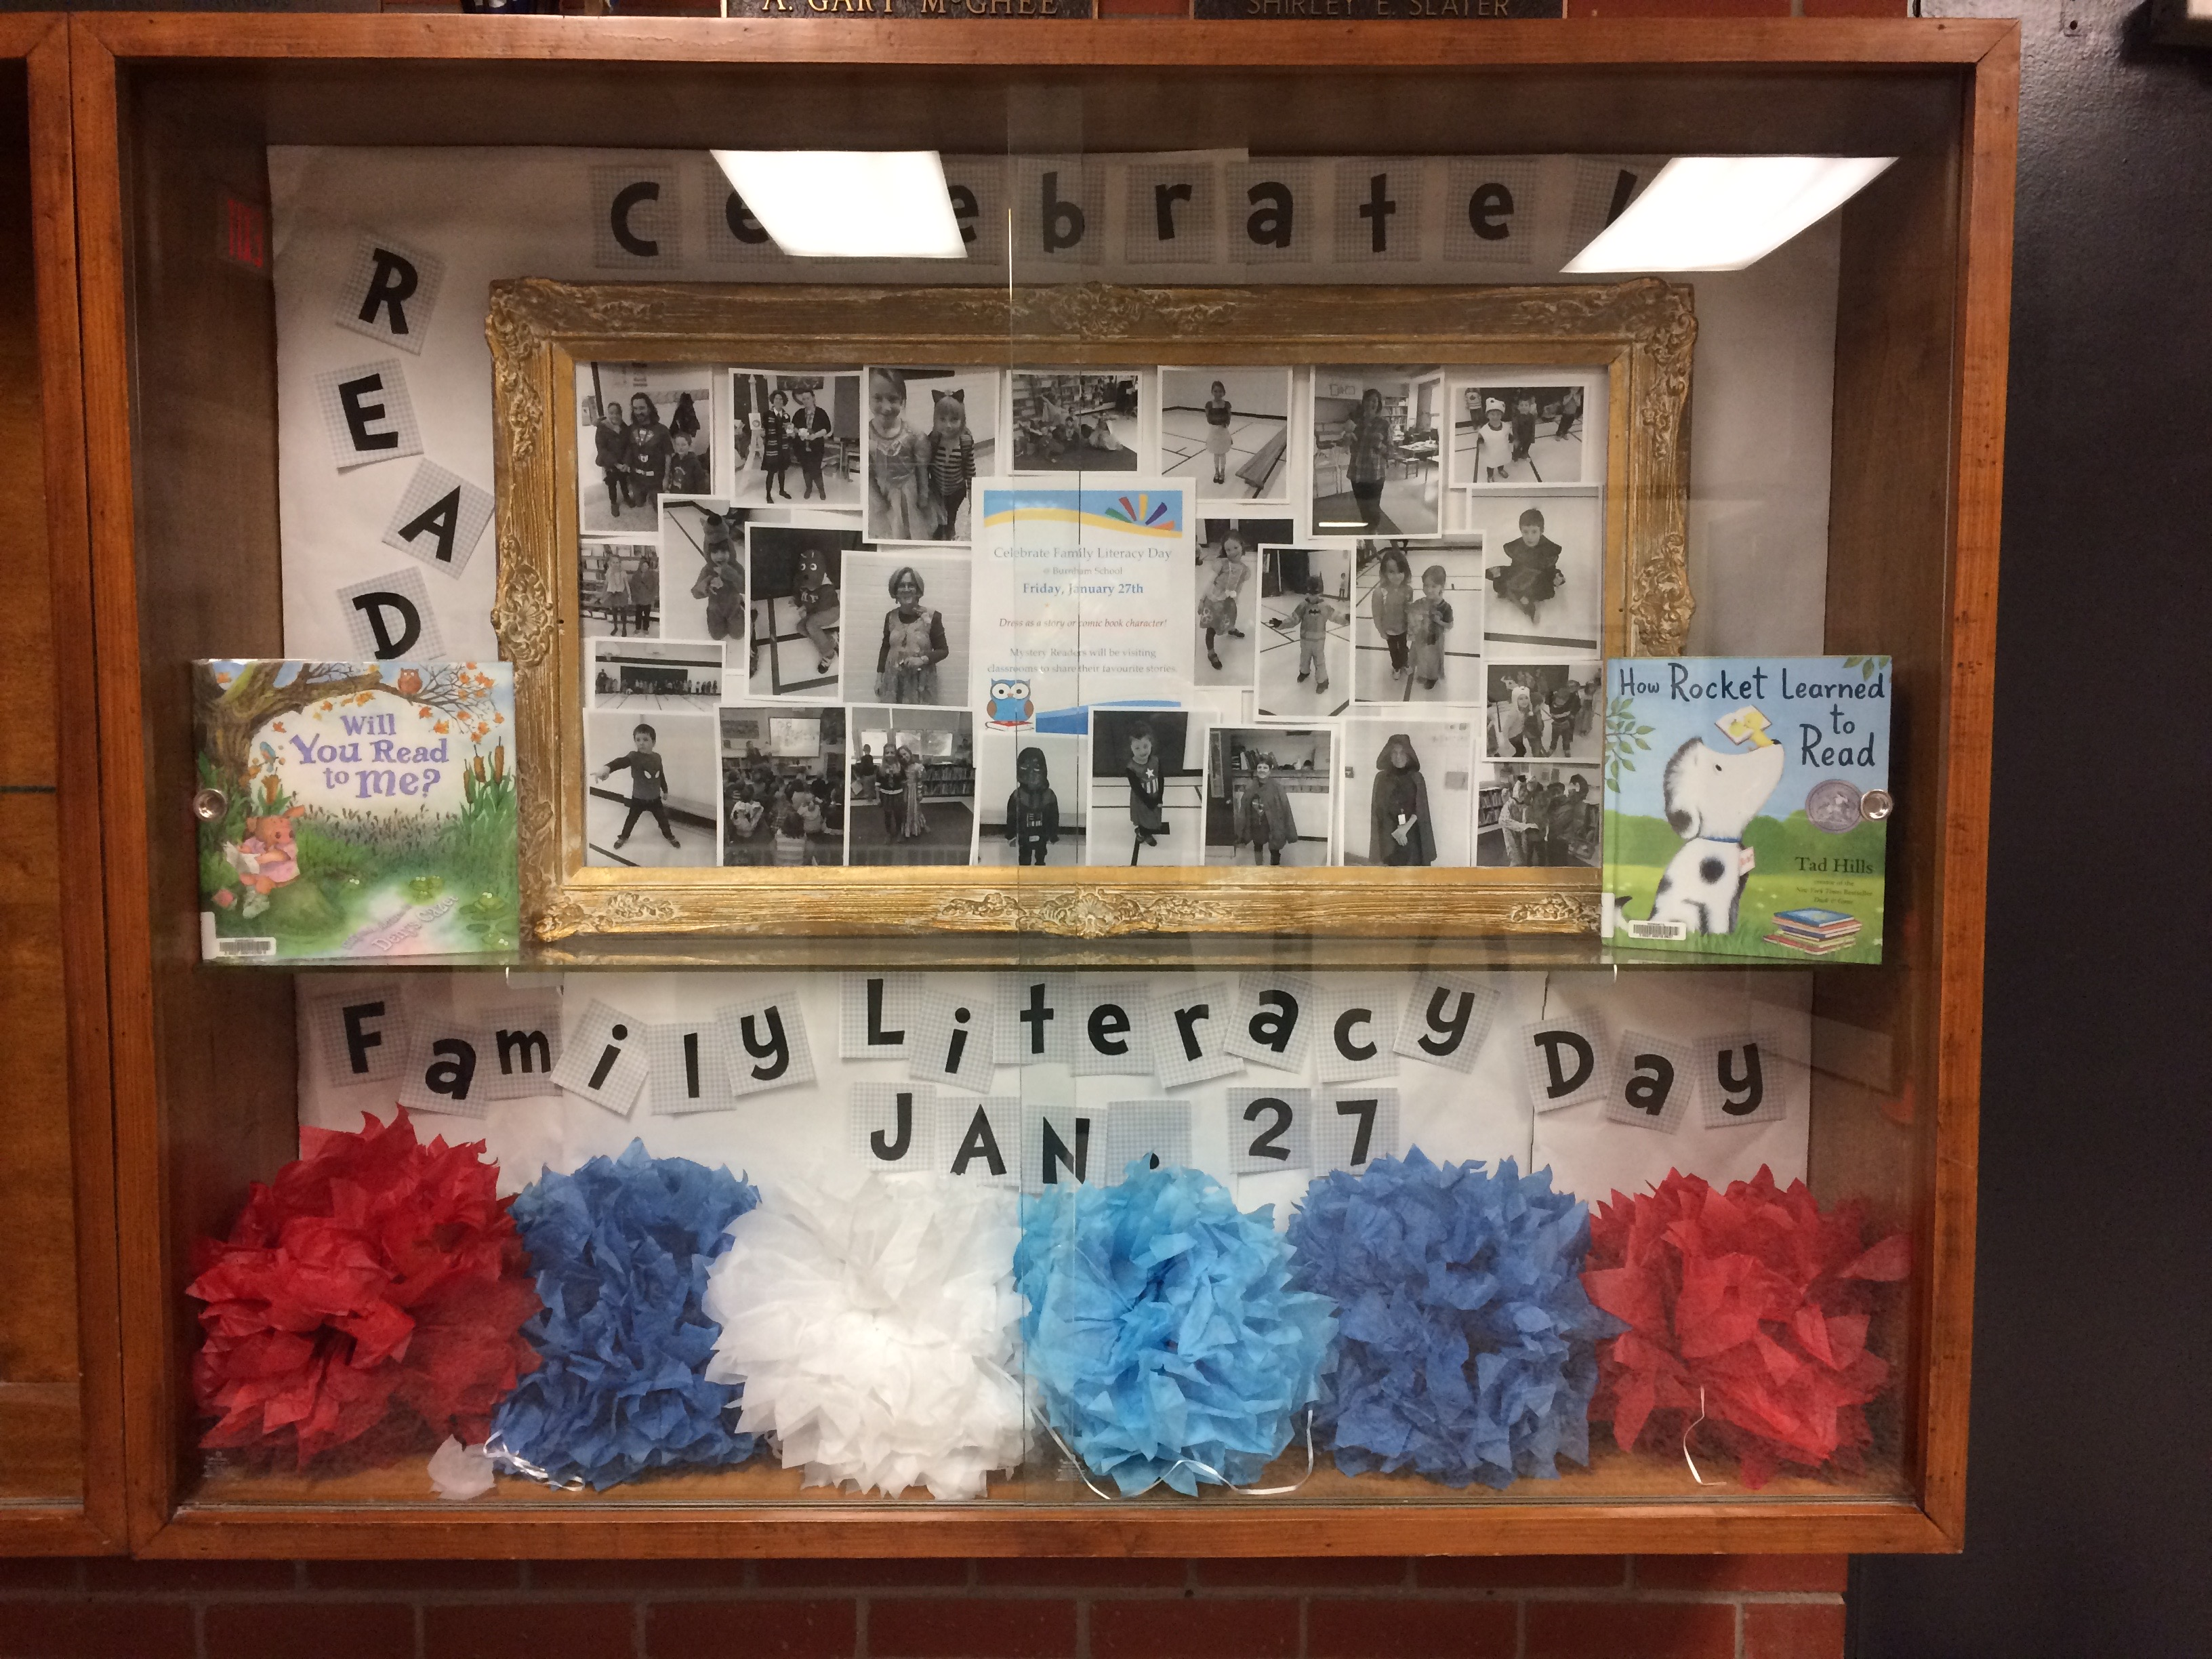 display case with Family Literacy Day pictures and books